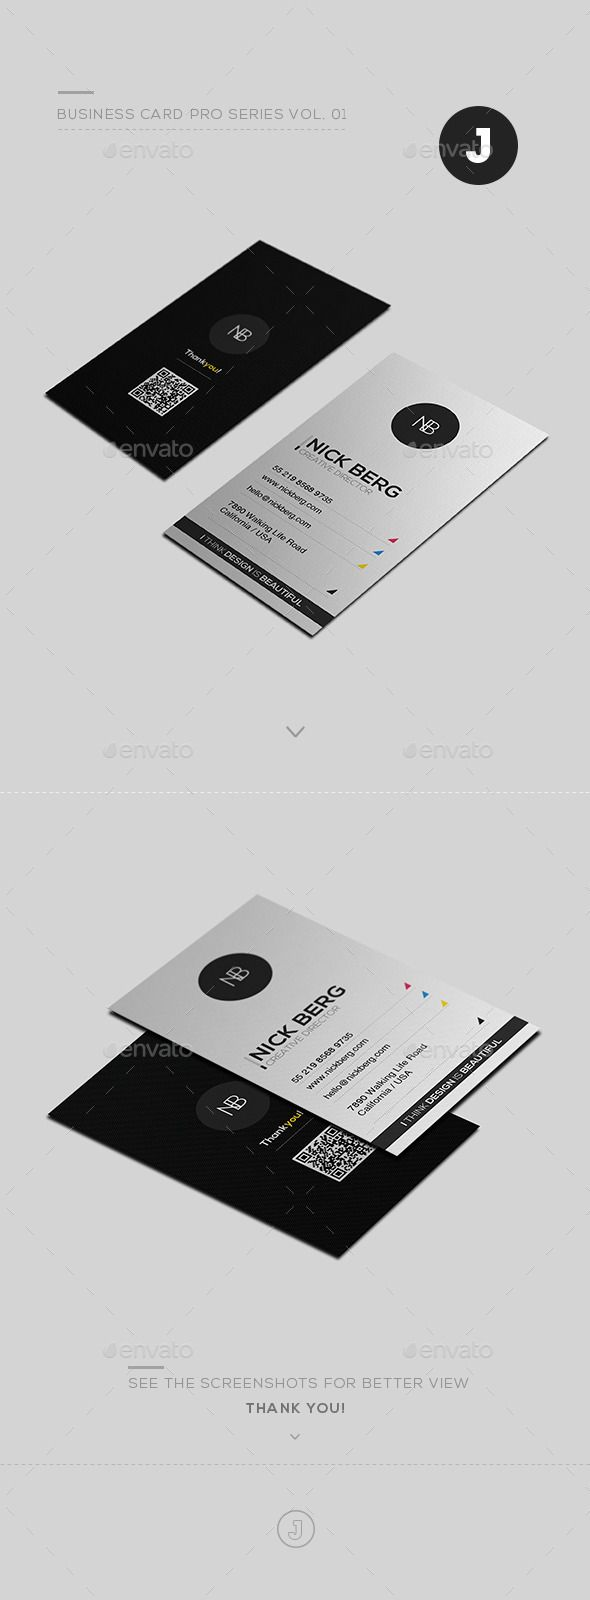 Business Card Pro Series Vol. 01 | Business cards, Business and Card ...